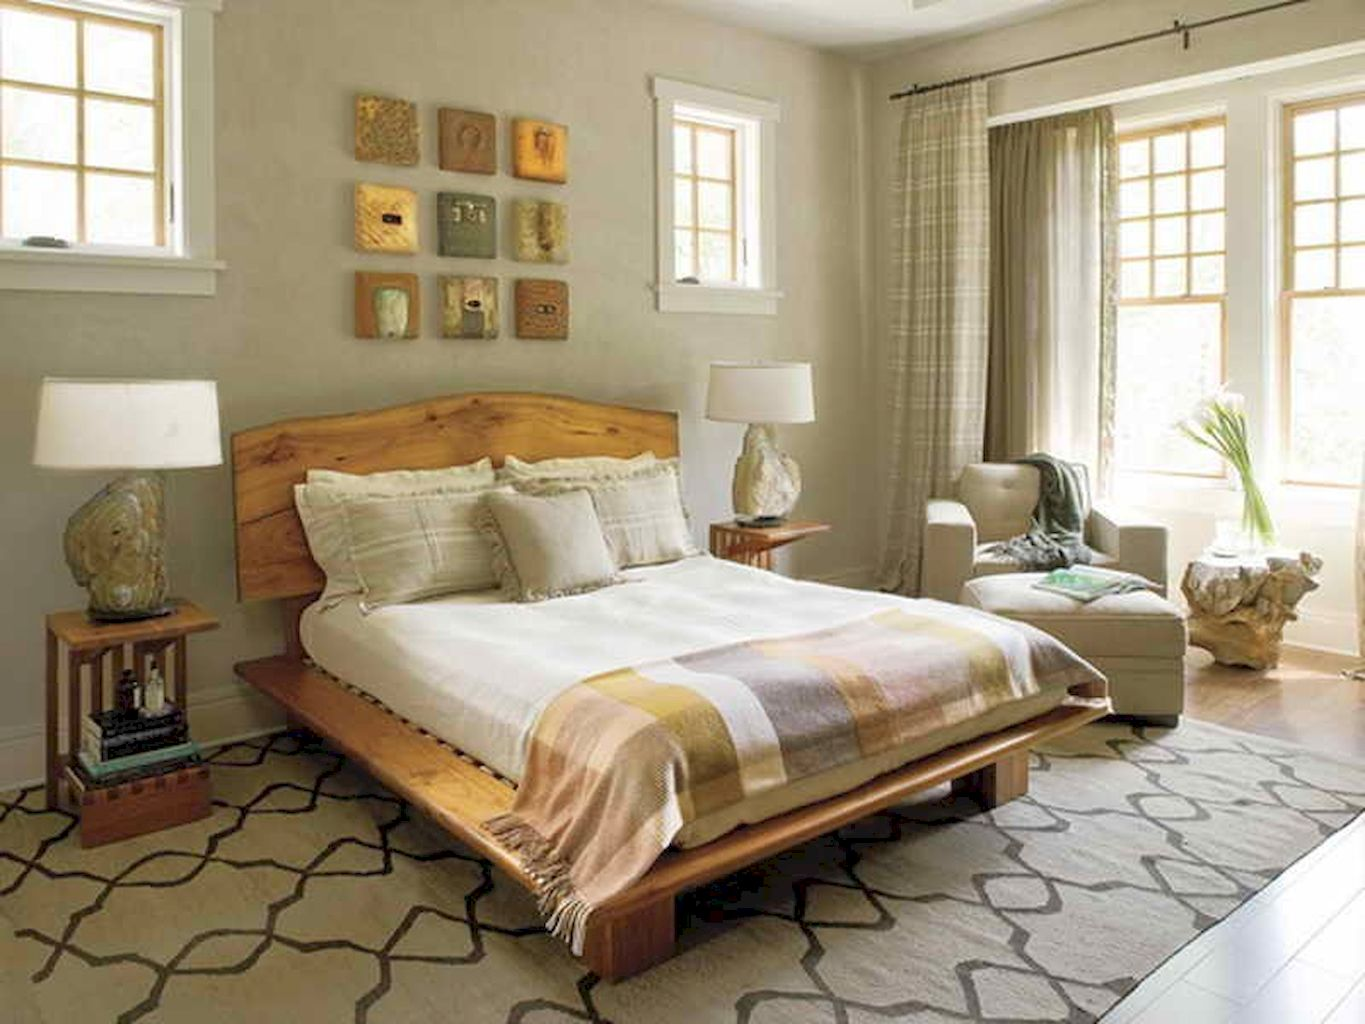 Easy Decor Hacks to Make Stunning Bedroom Design ...